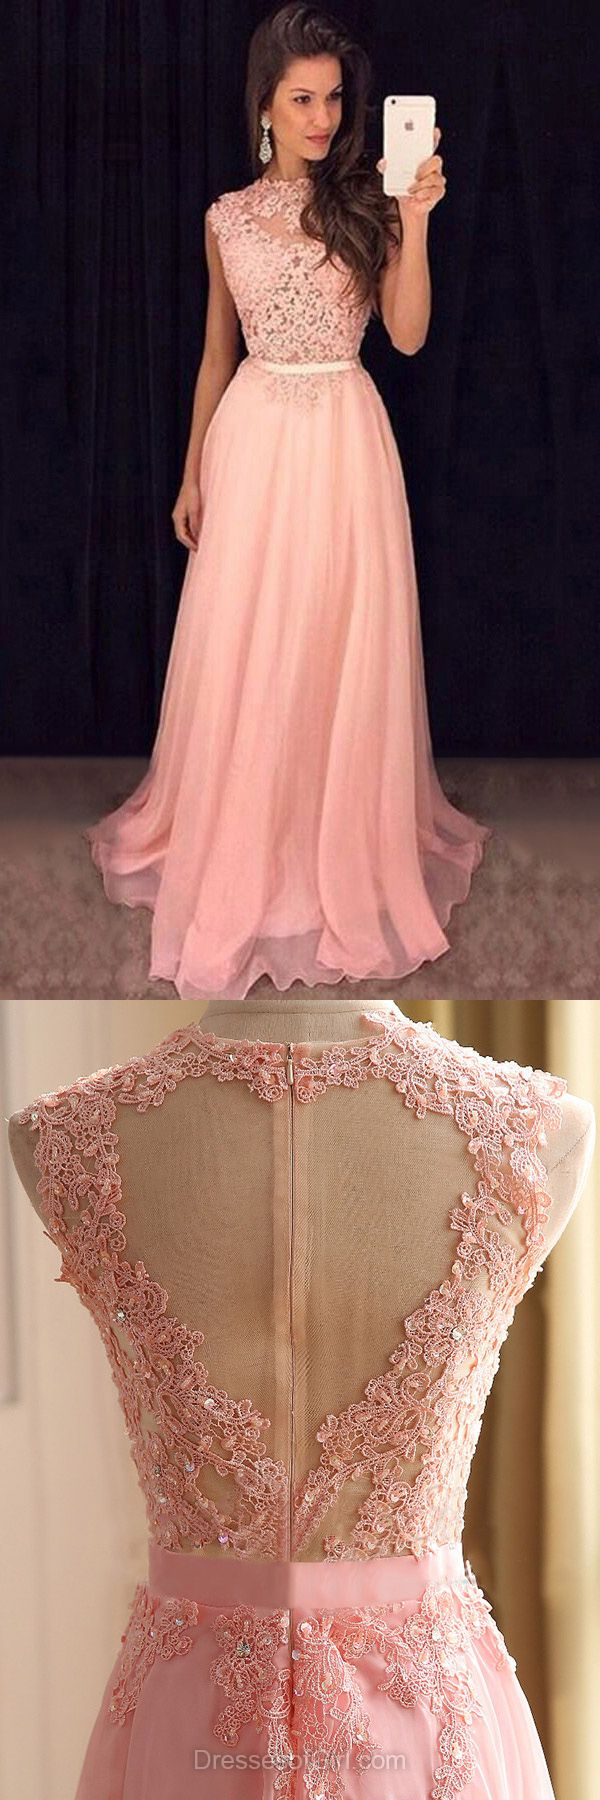 18 best Pink Gown images on Pinterest | Party fashion, Formal prom ...